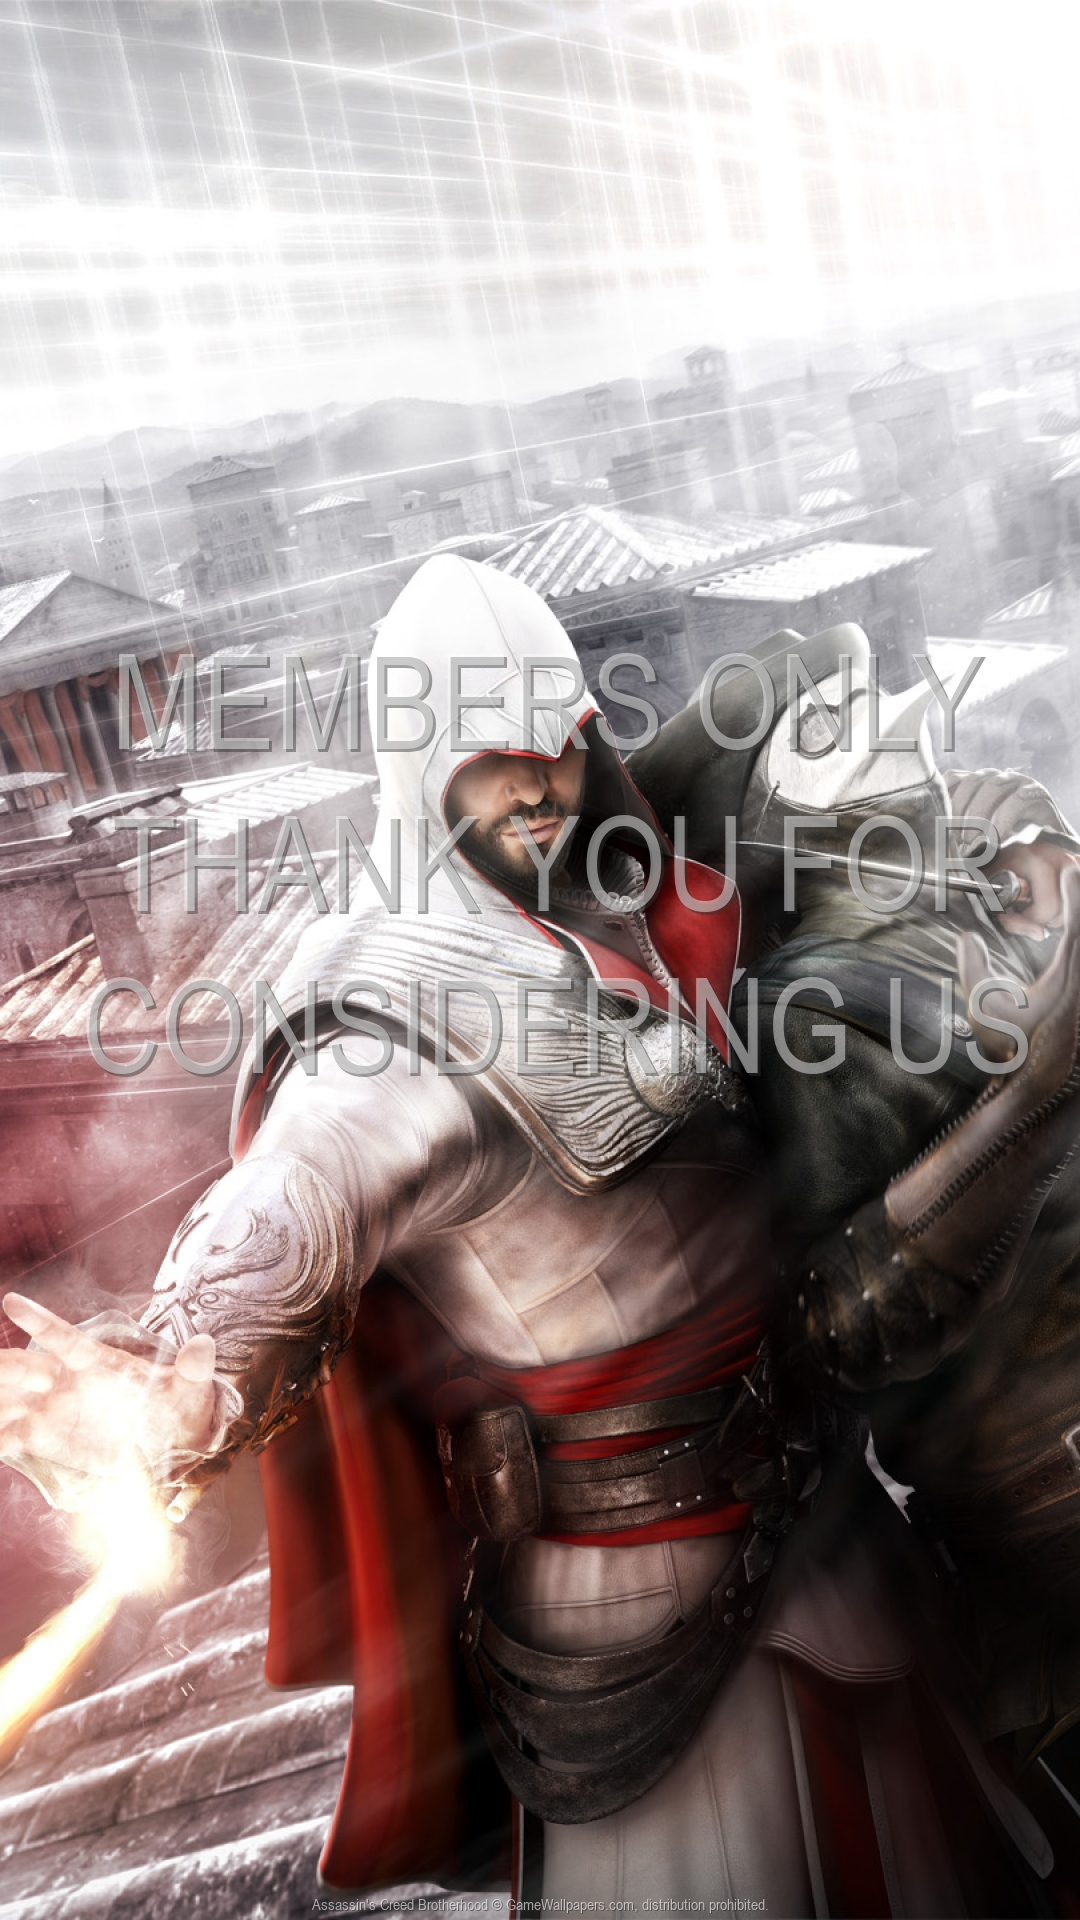 Assassin's Creed: Brotherhood 1920x1080 Mobiele achtergrond 06